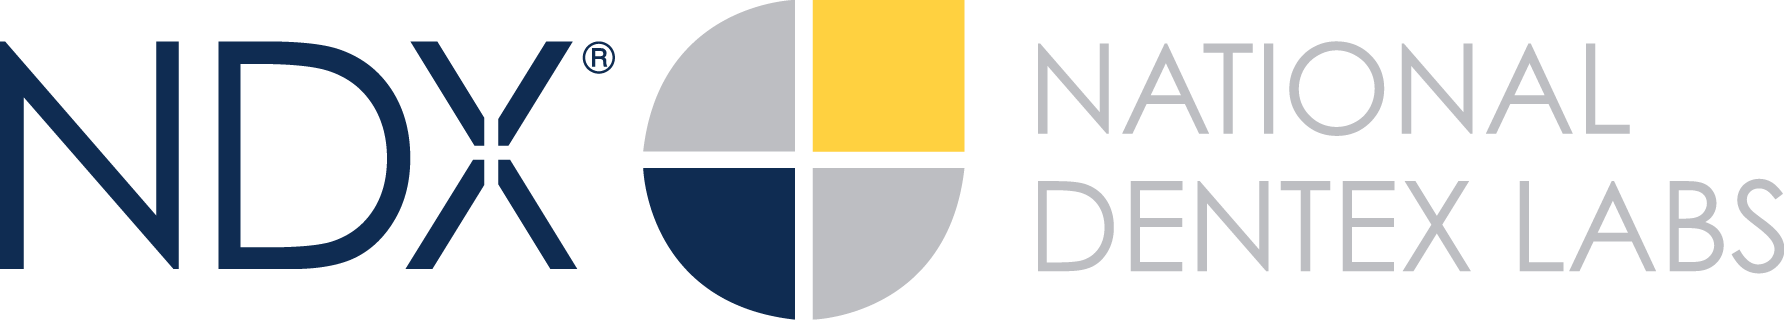 NDX National Dentex Labs logo